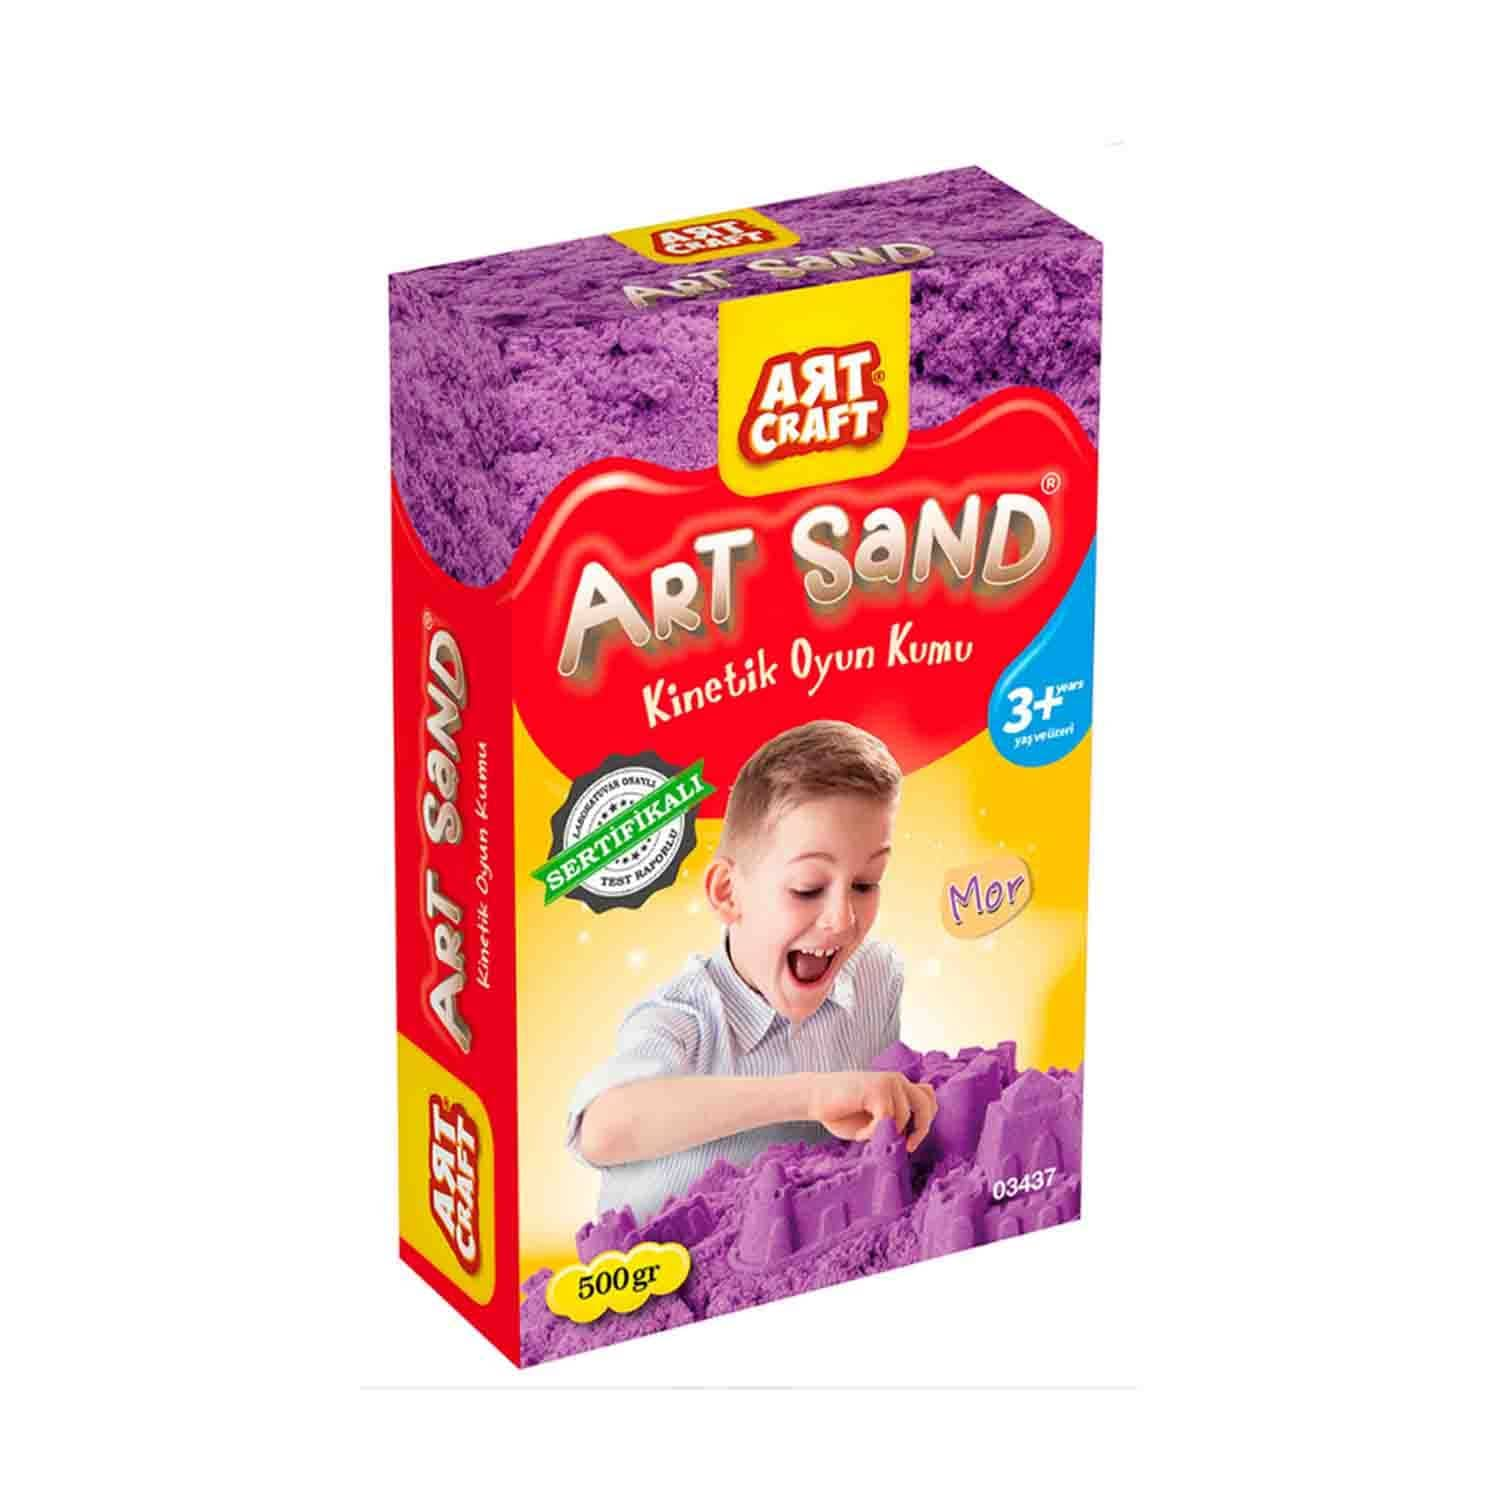 Art Craft Mor Kinetik Oyun Kumu 500 Gr